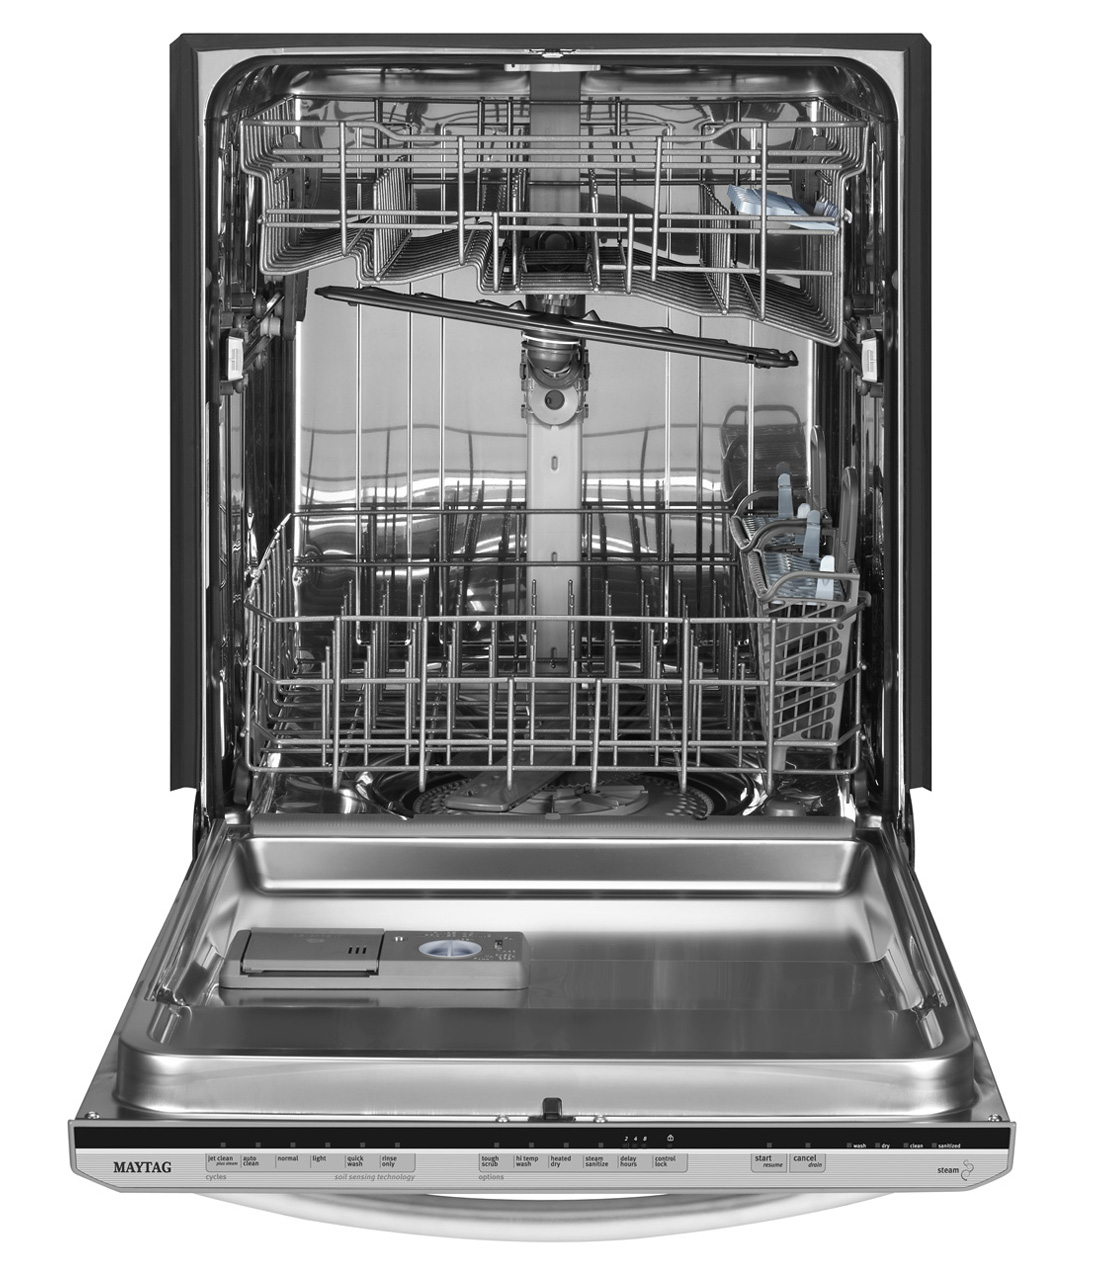 Maytag Jetclean Dishwasher Owners Manual